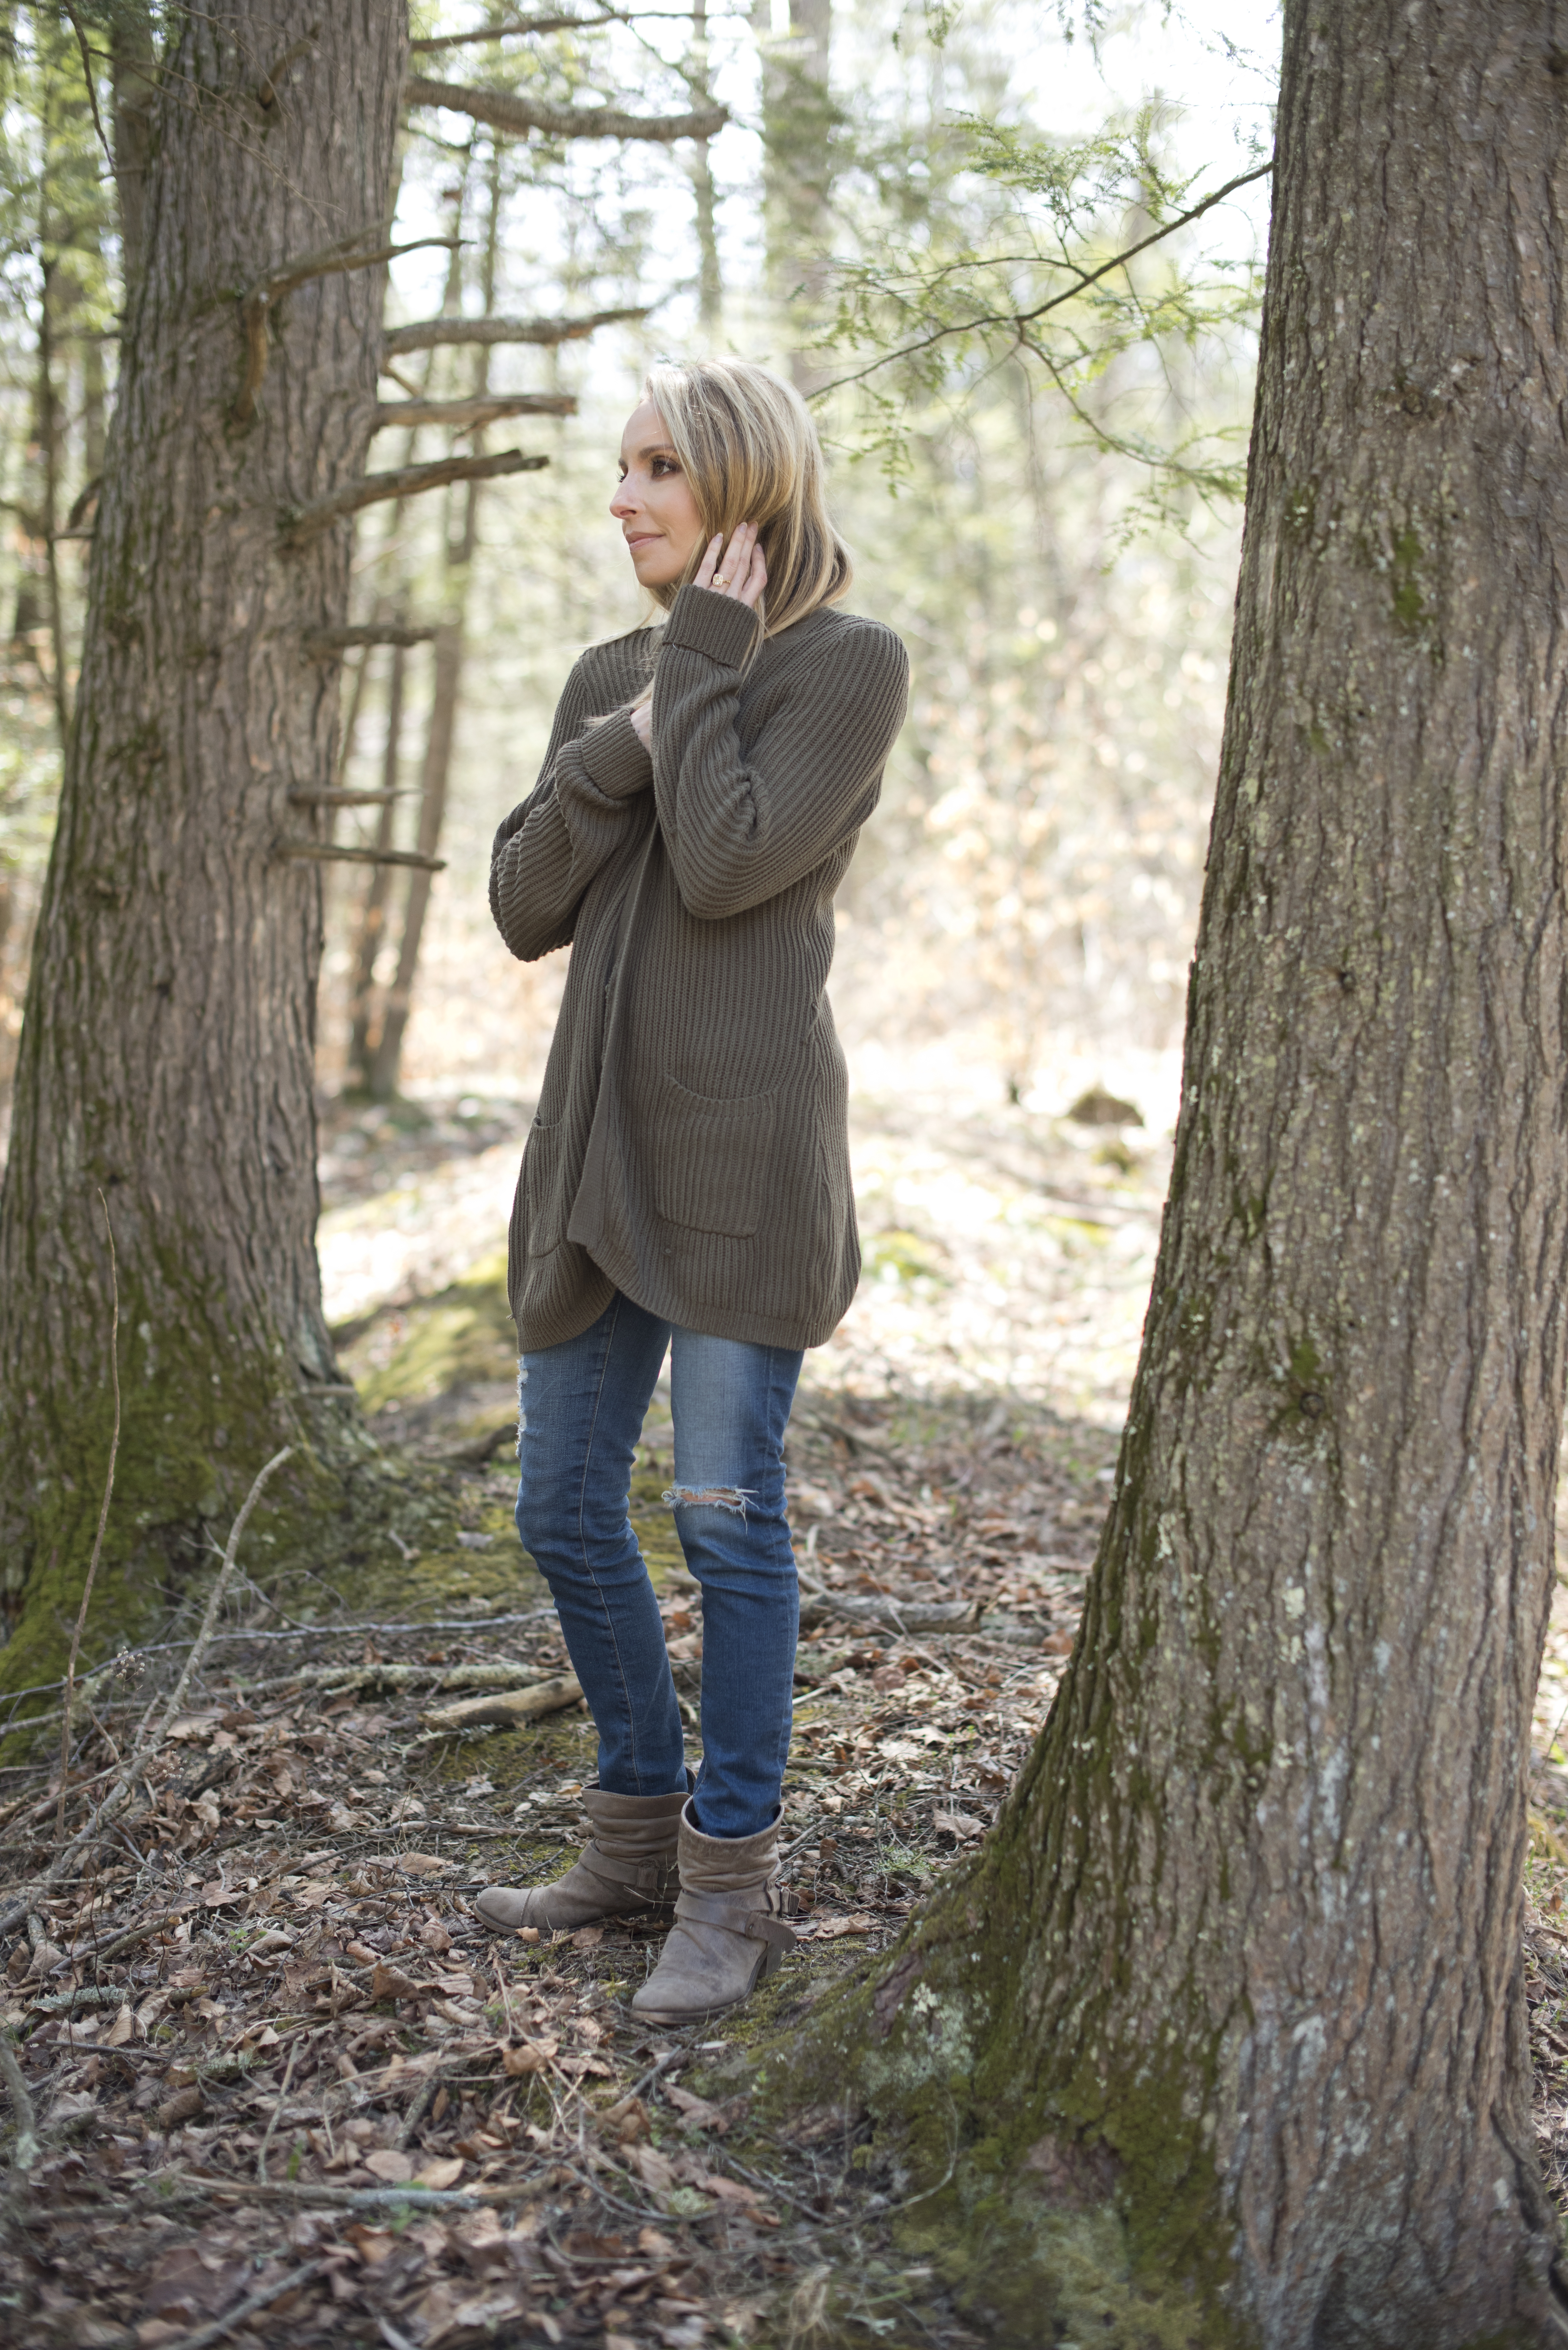 gabby bernstein walking in the woods   re-energize your spiritual practice when life gets busy